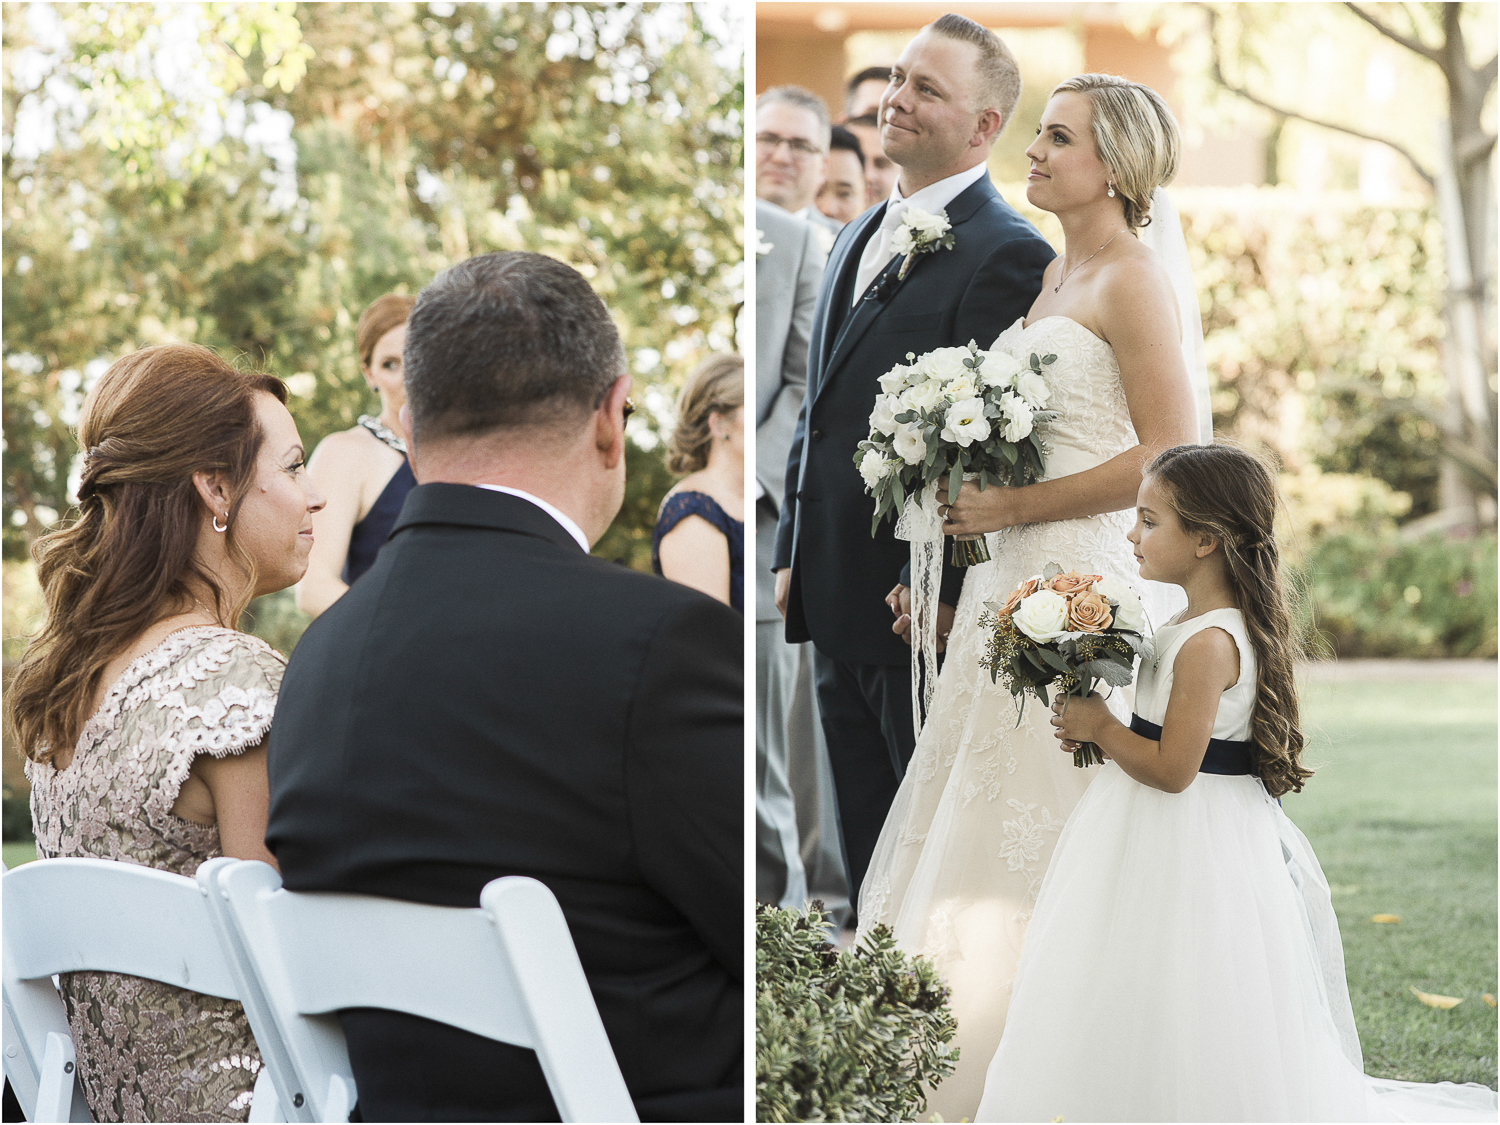 The flower girl was also their daughter and stayed close to Mama's side throughout the ceremony.